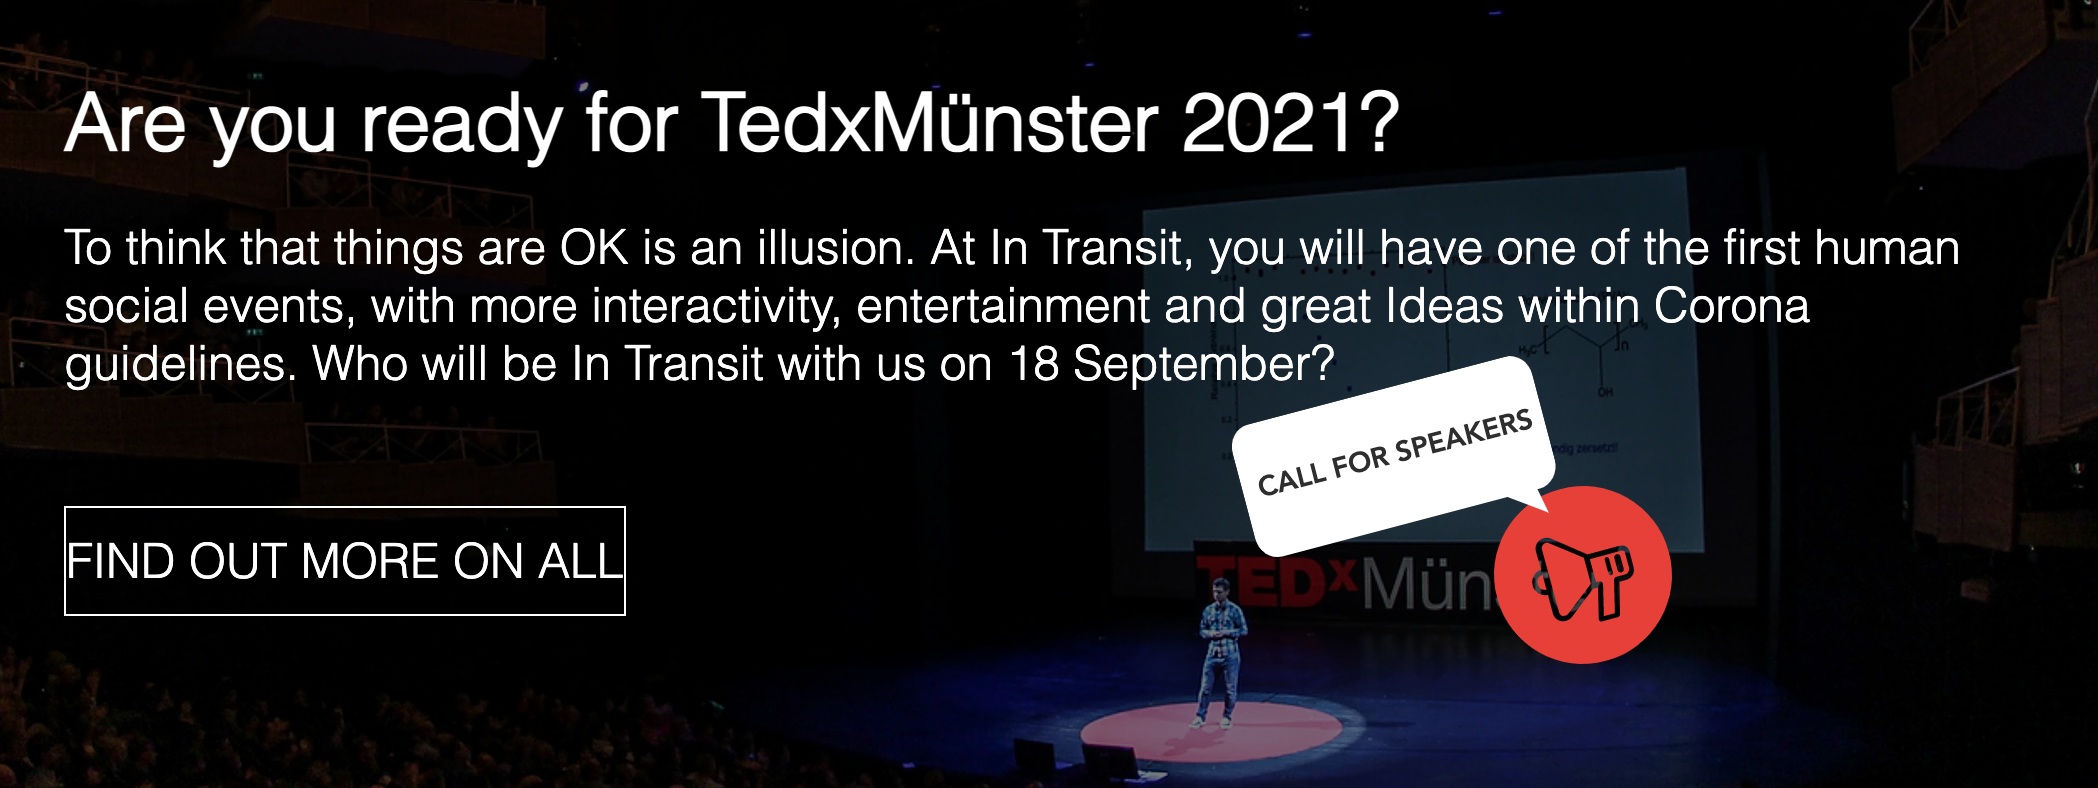 Are you ready for TedxMünster 2021?